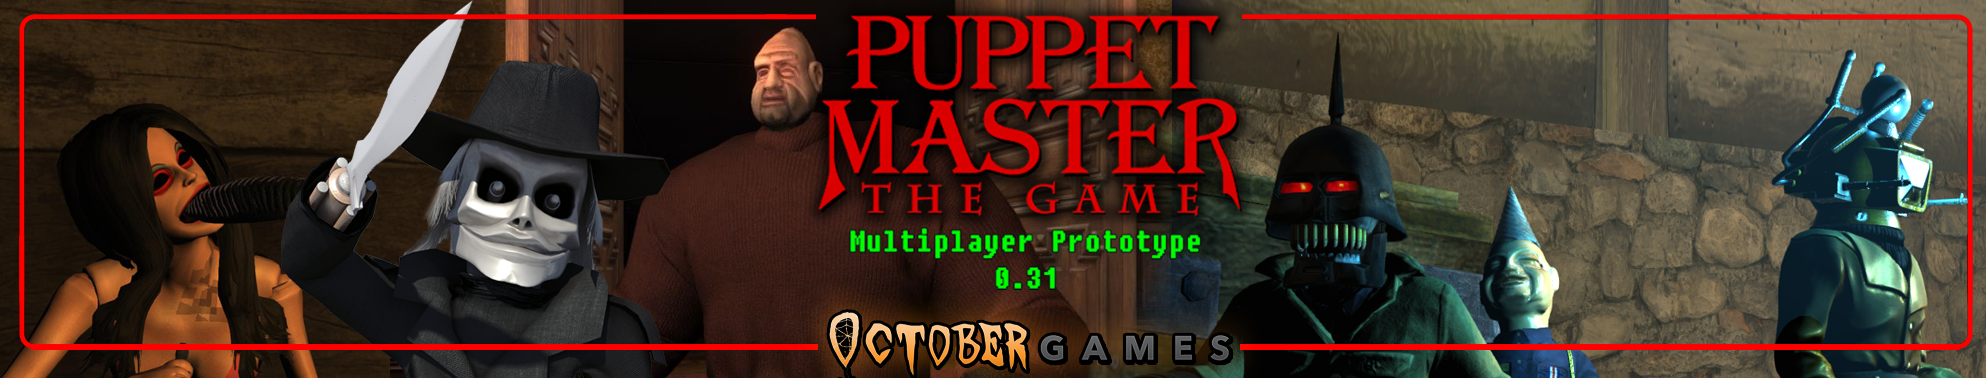 Puppet Master: The Game (Multiplayer Prototype)